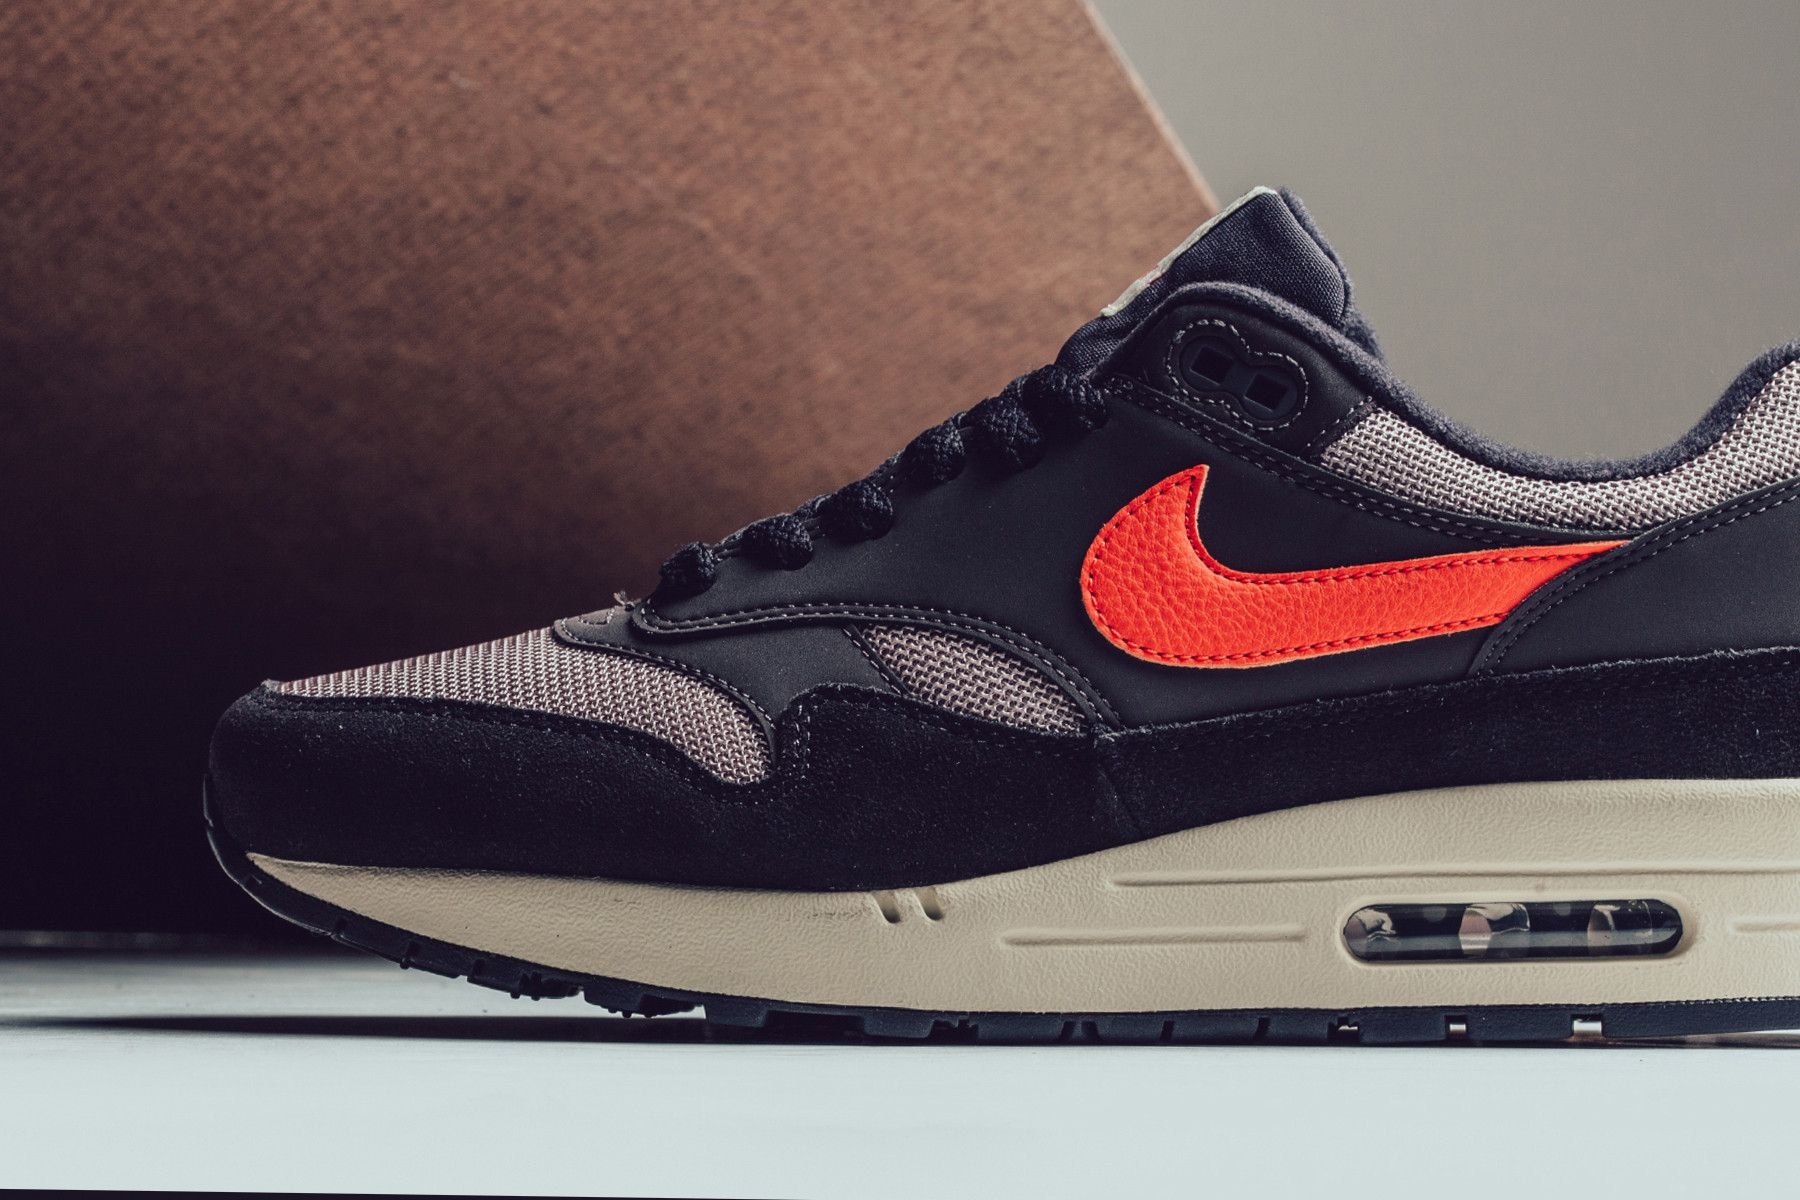 """Nike Combines """"Oil Grey"""" & """"Wild Mango"""" on the Air Max 1 